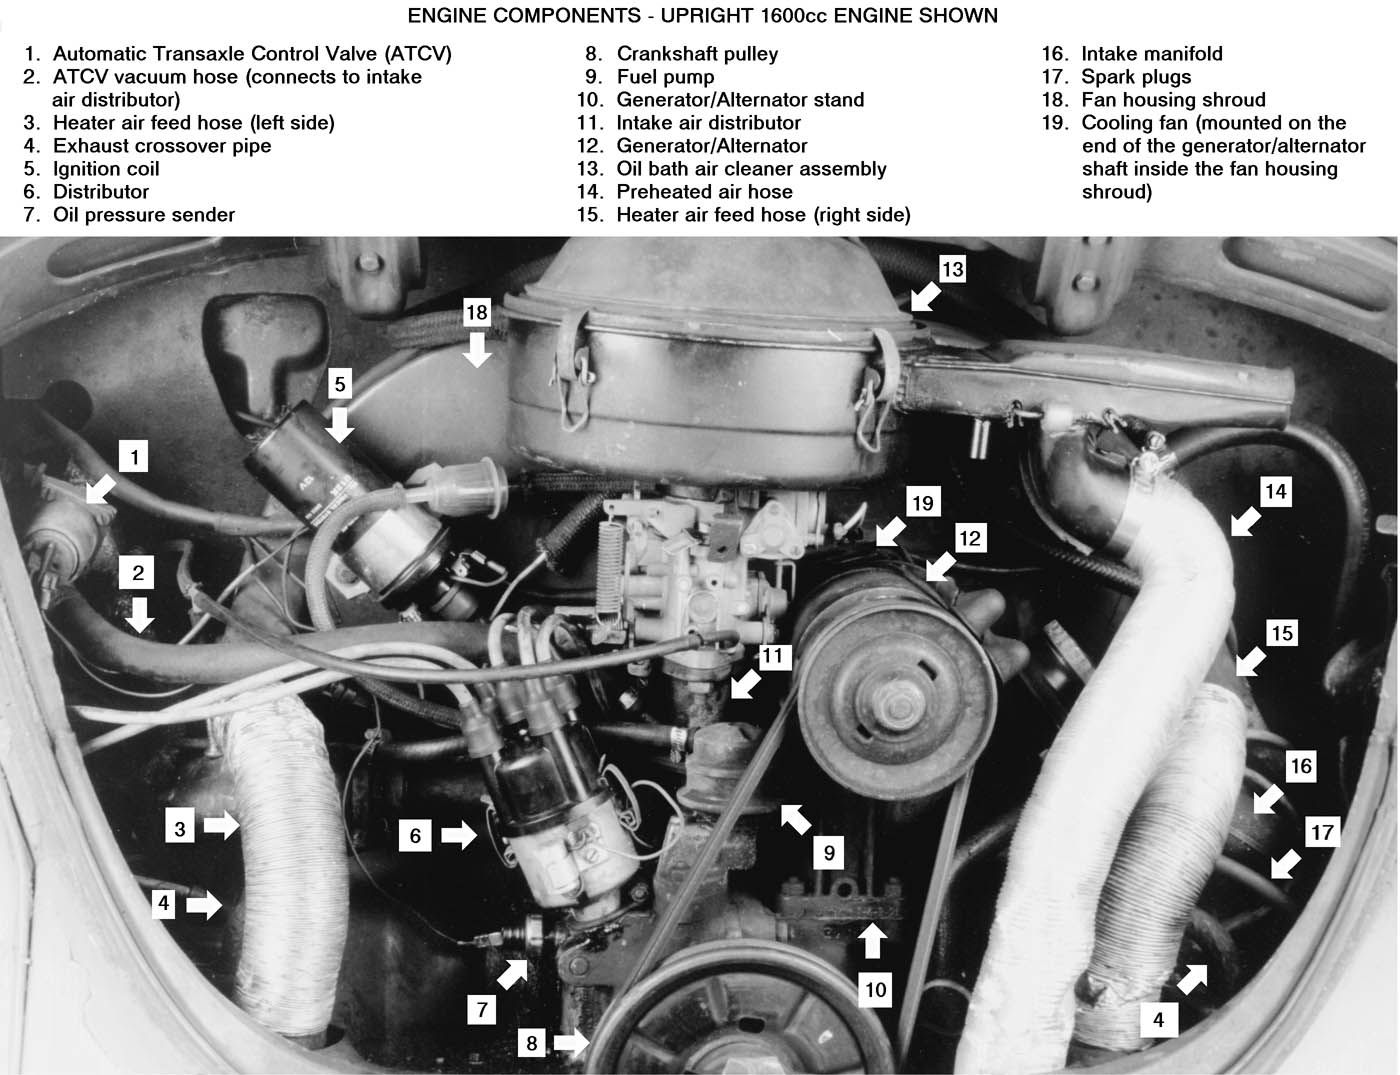 hight resolution of 1972 vw beetle engine diagram starter vw download free image about wiring diagram